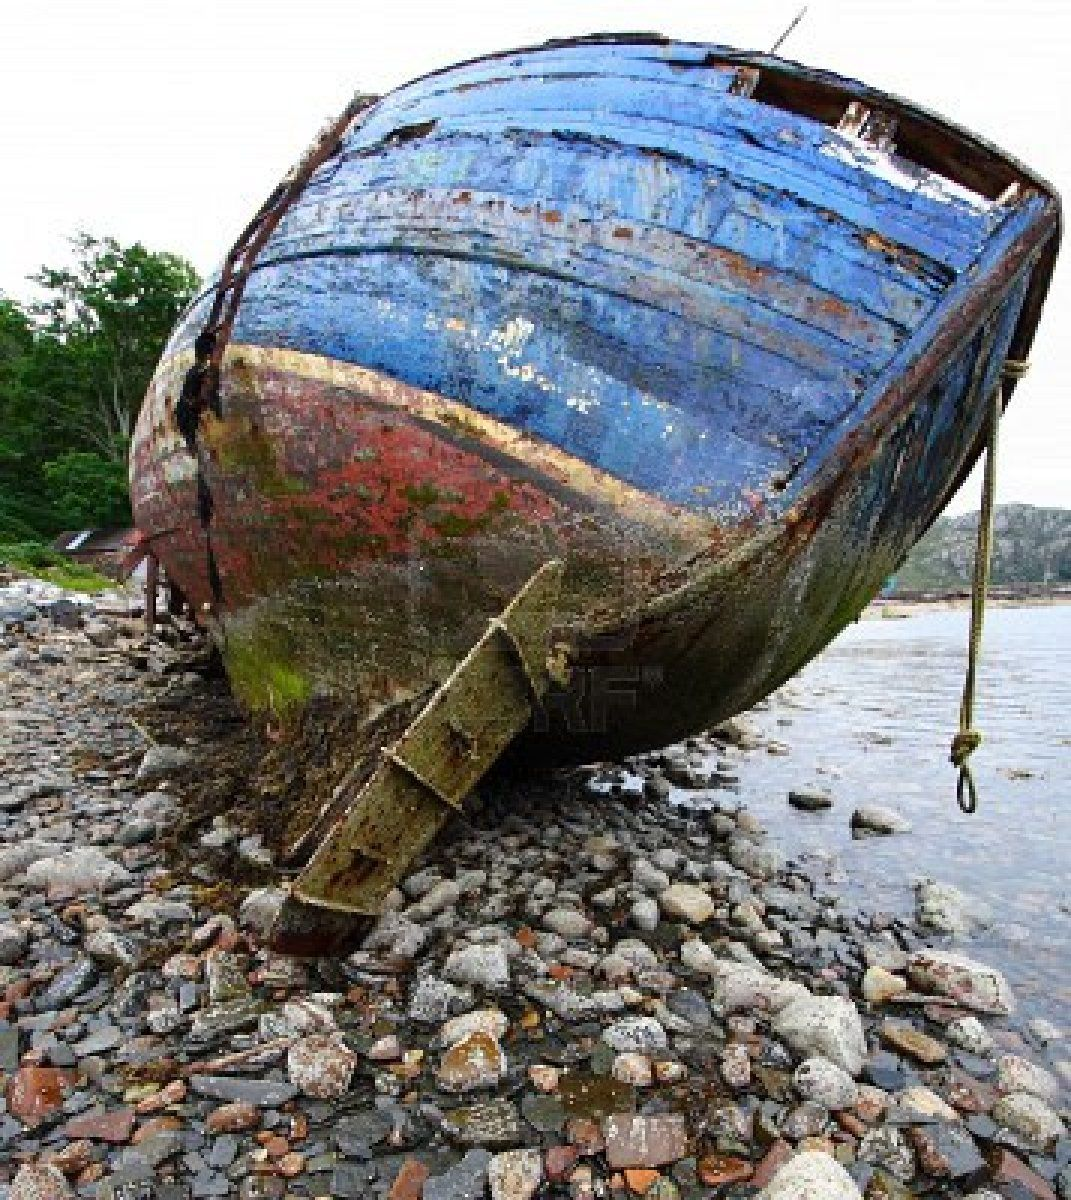 Old Fishing Boats On Beach: Old Boats, Abandoned Ships, Boat